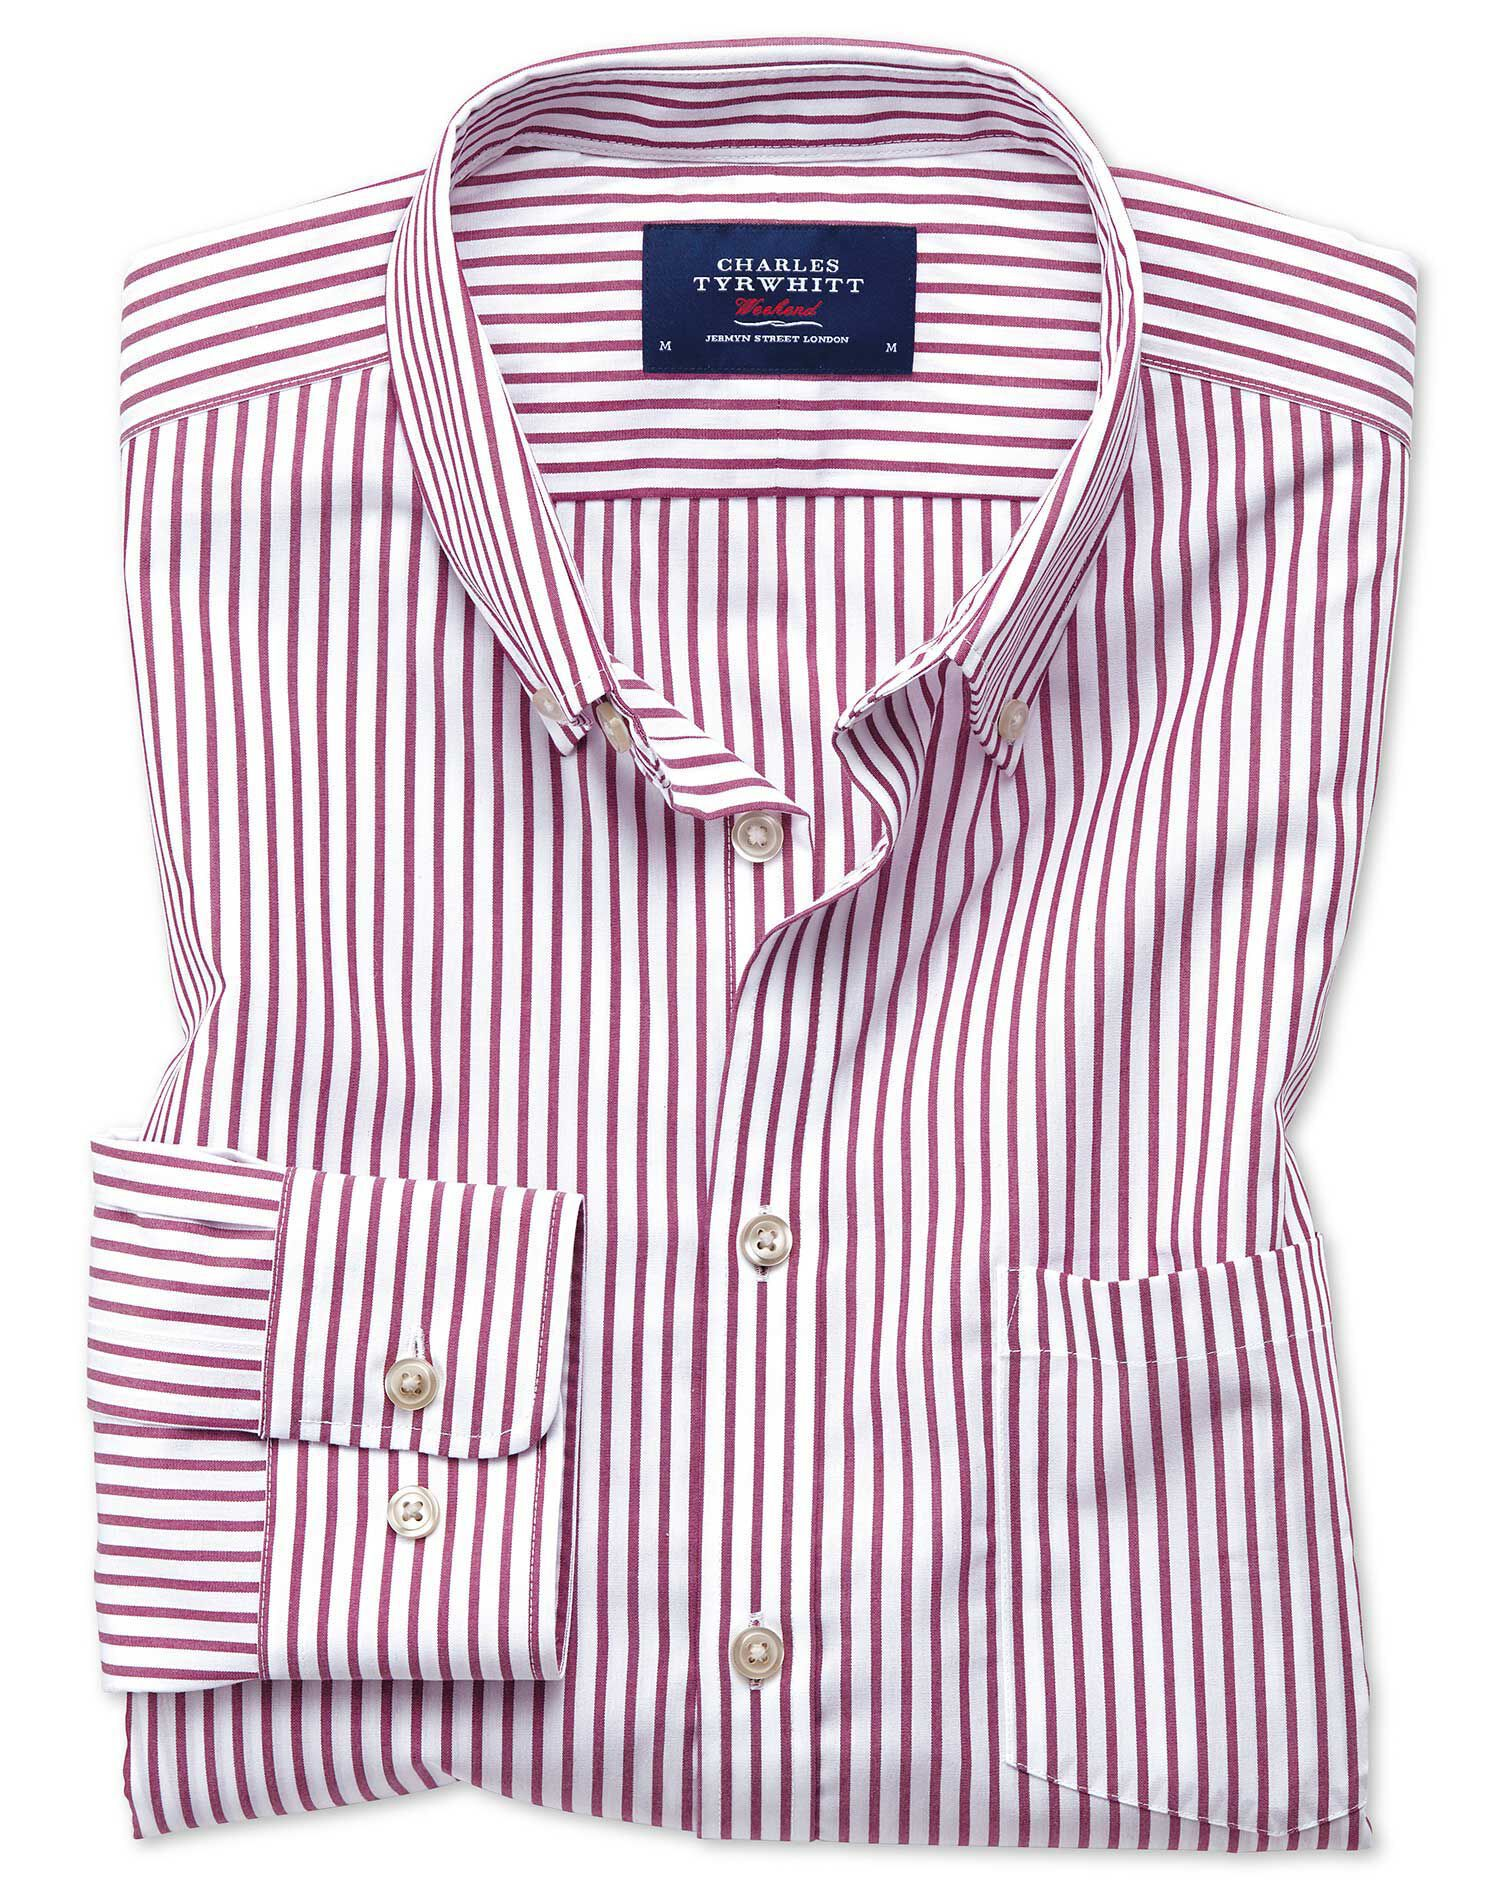 Classic Fit Button-Down Non-Iron Poplin Berry Stripe Cotton Shirt Single Cuff Size Large by Charles